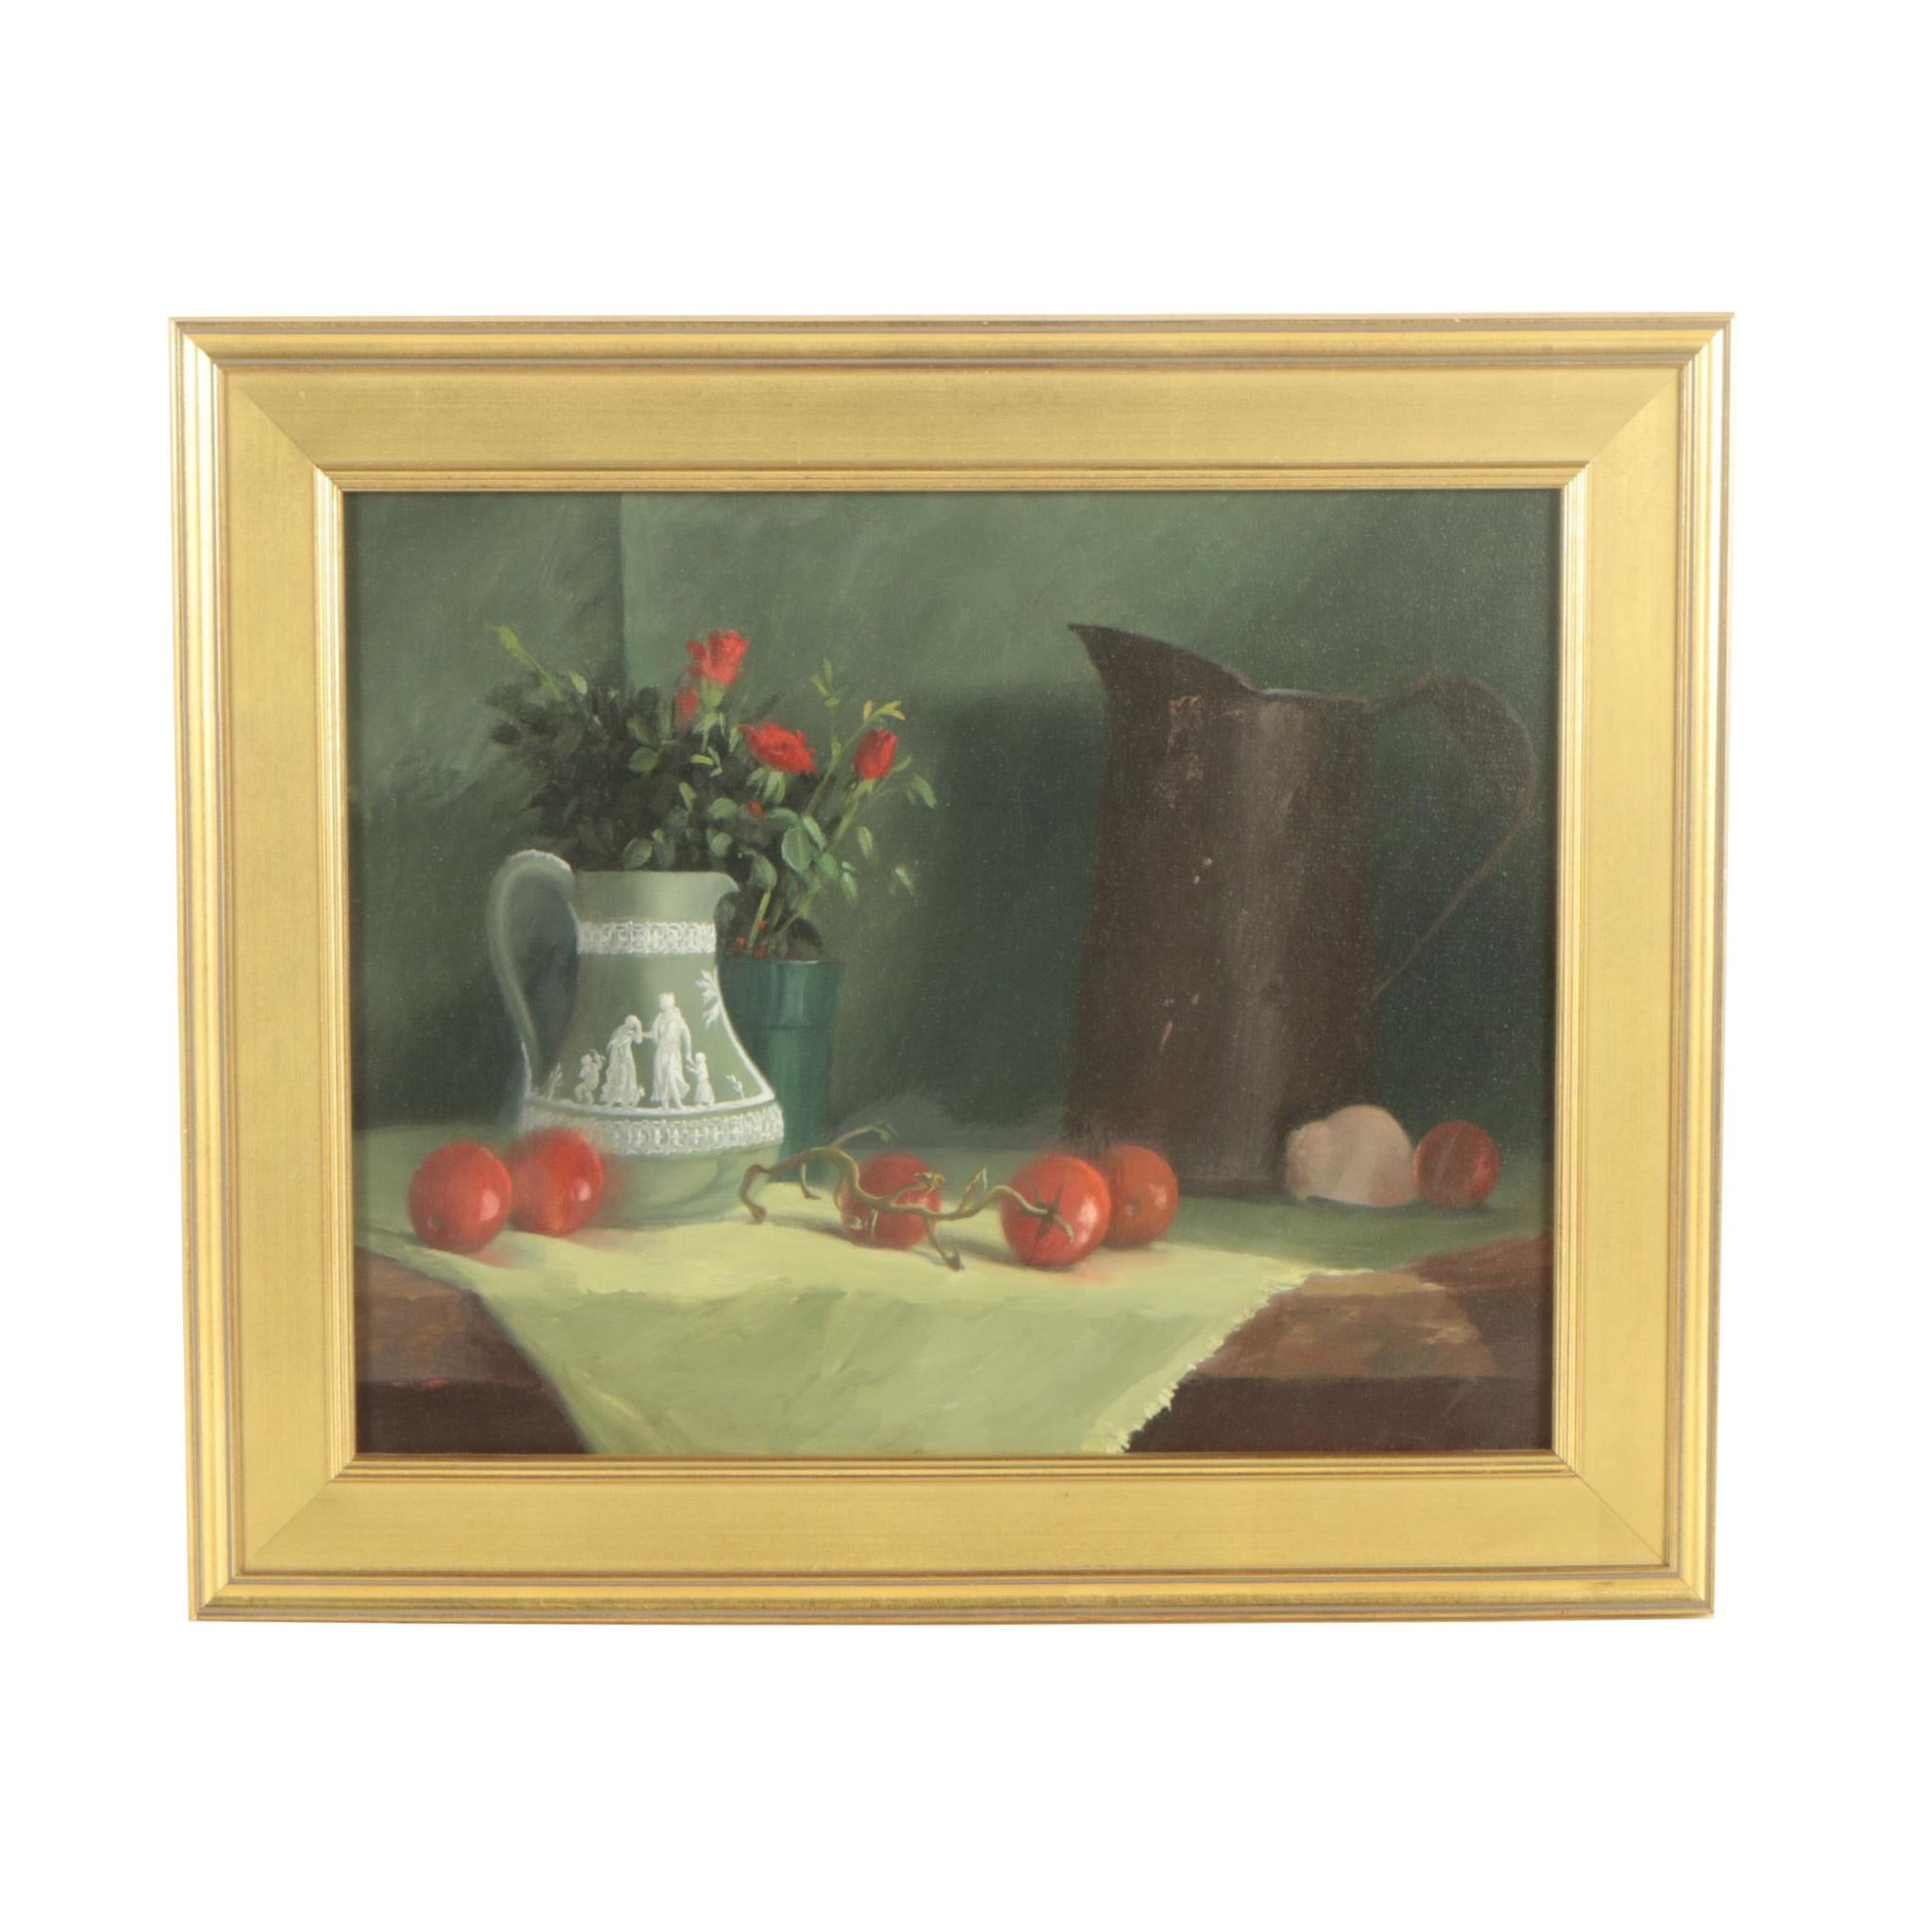 Gayle Levée Oil Painting of Still Life